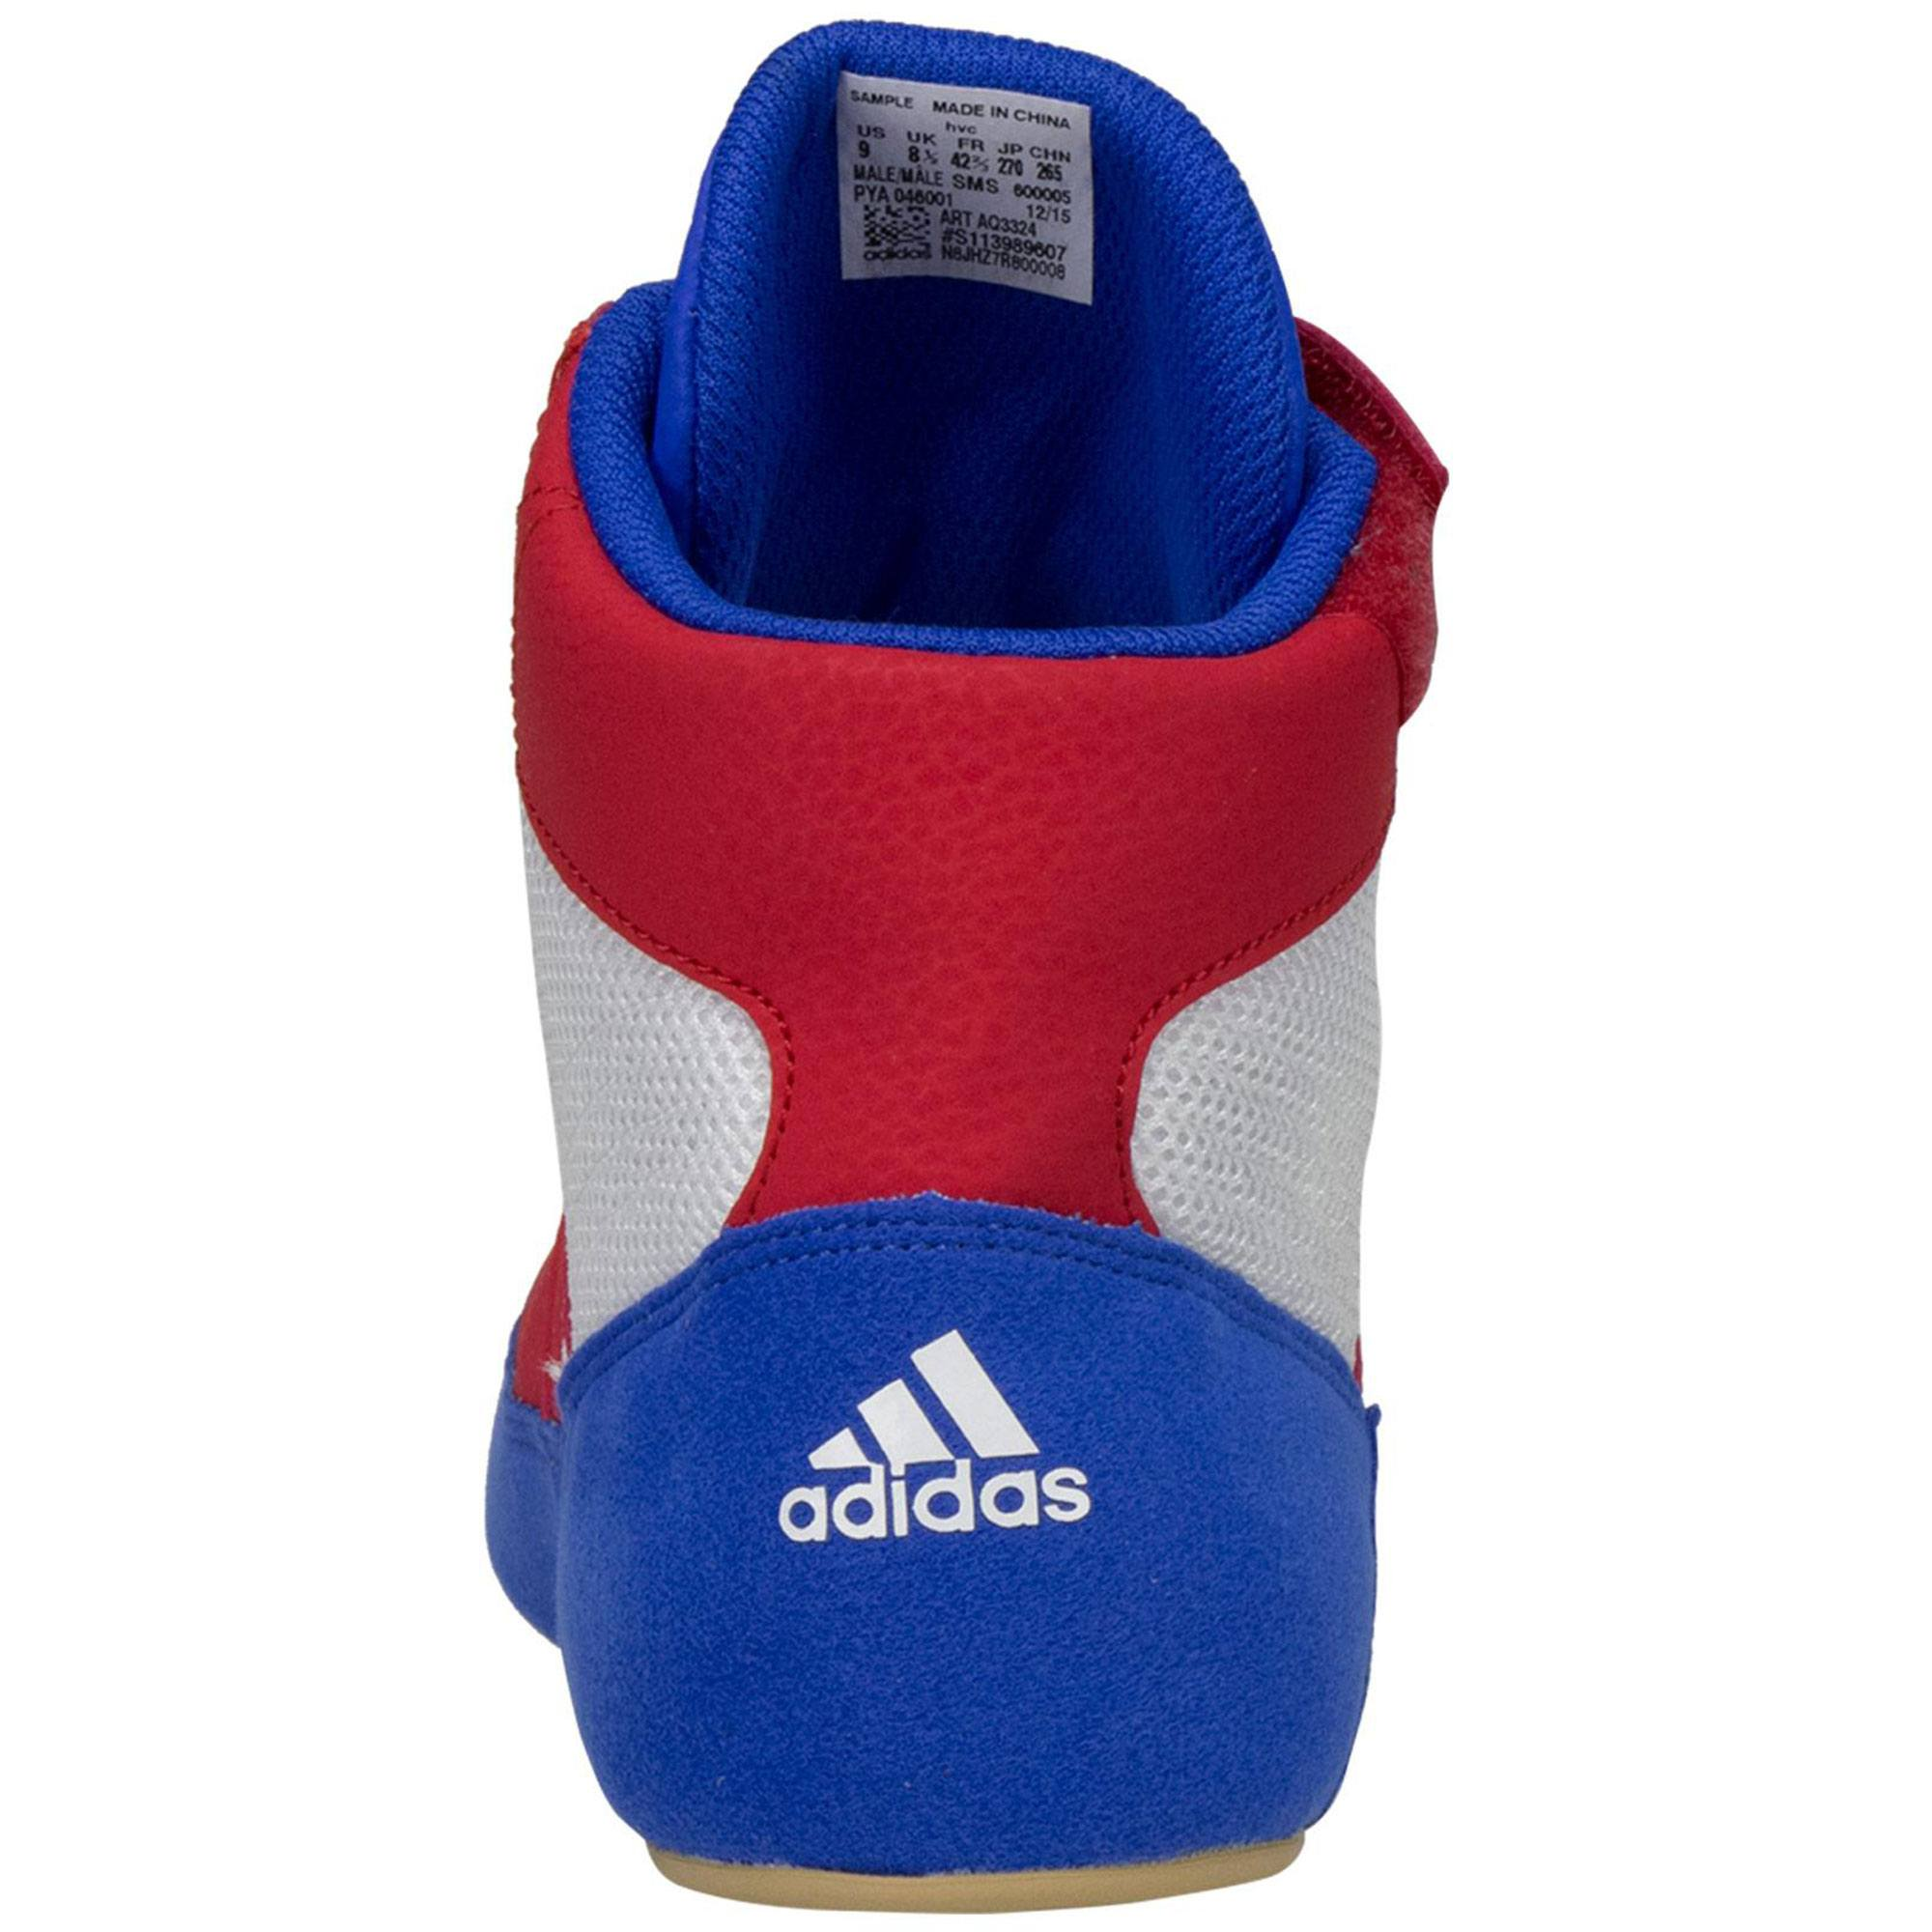 062e9a8b7ca697 ... insideAdidas Laced Youth Hvc 2 Blue Red White ...